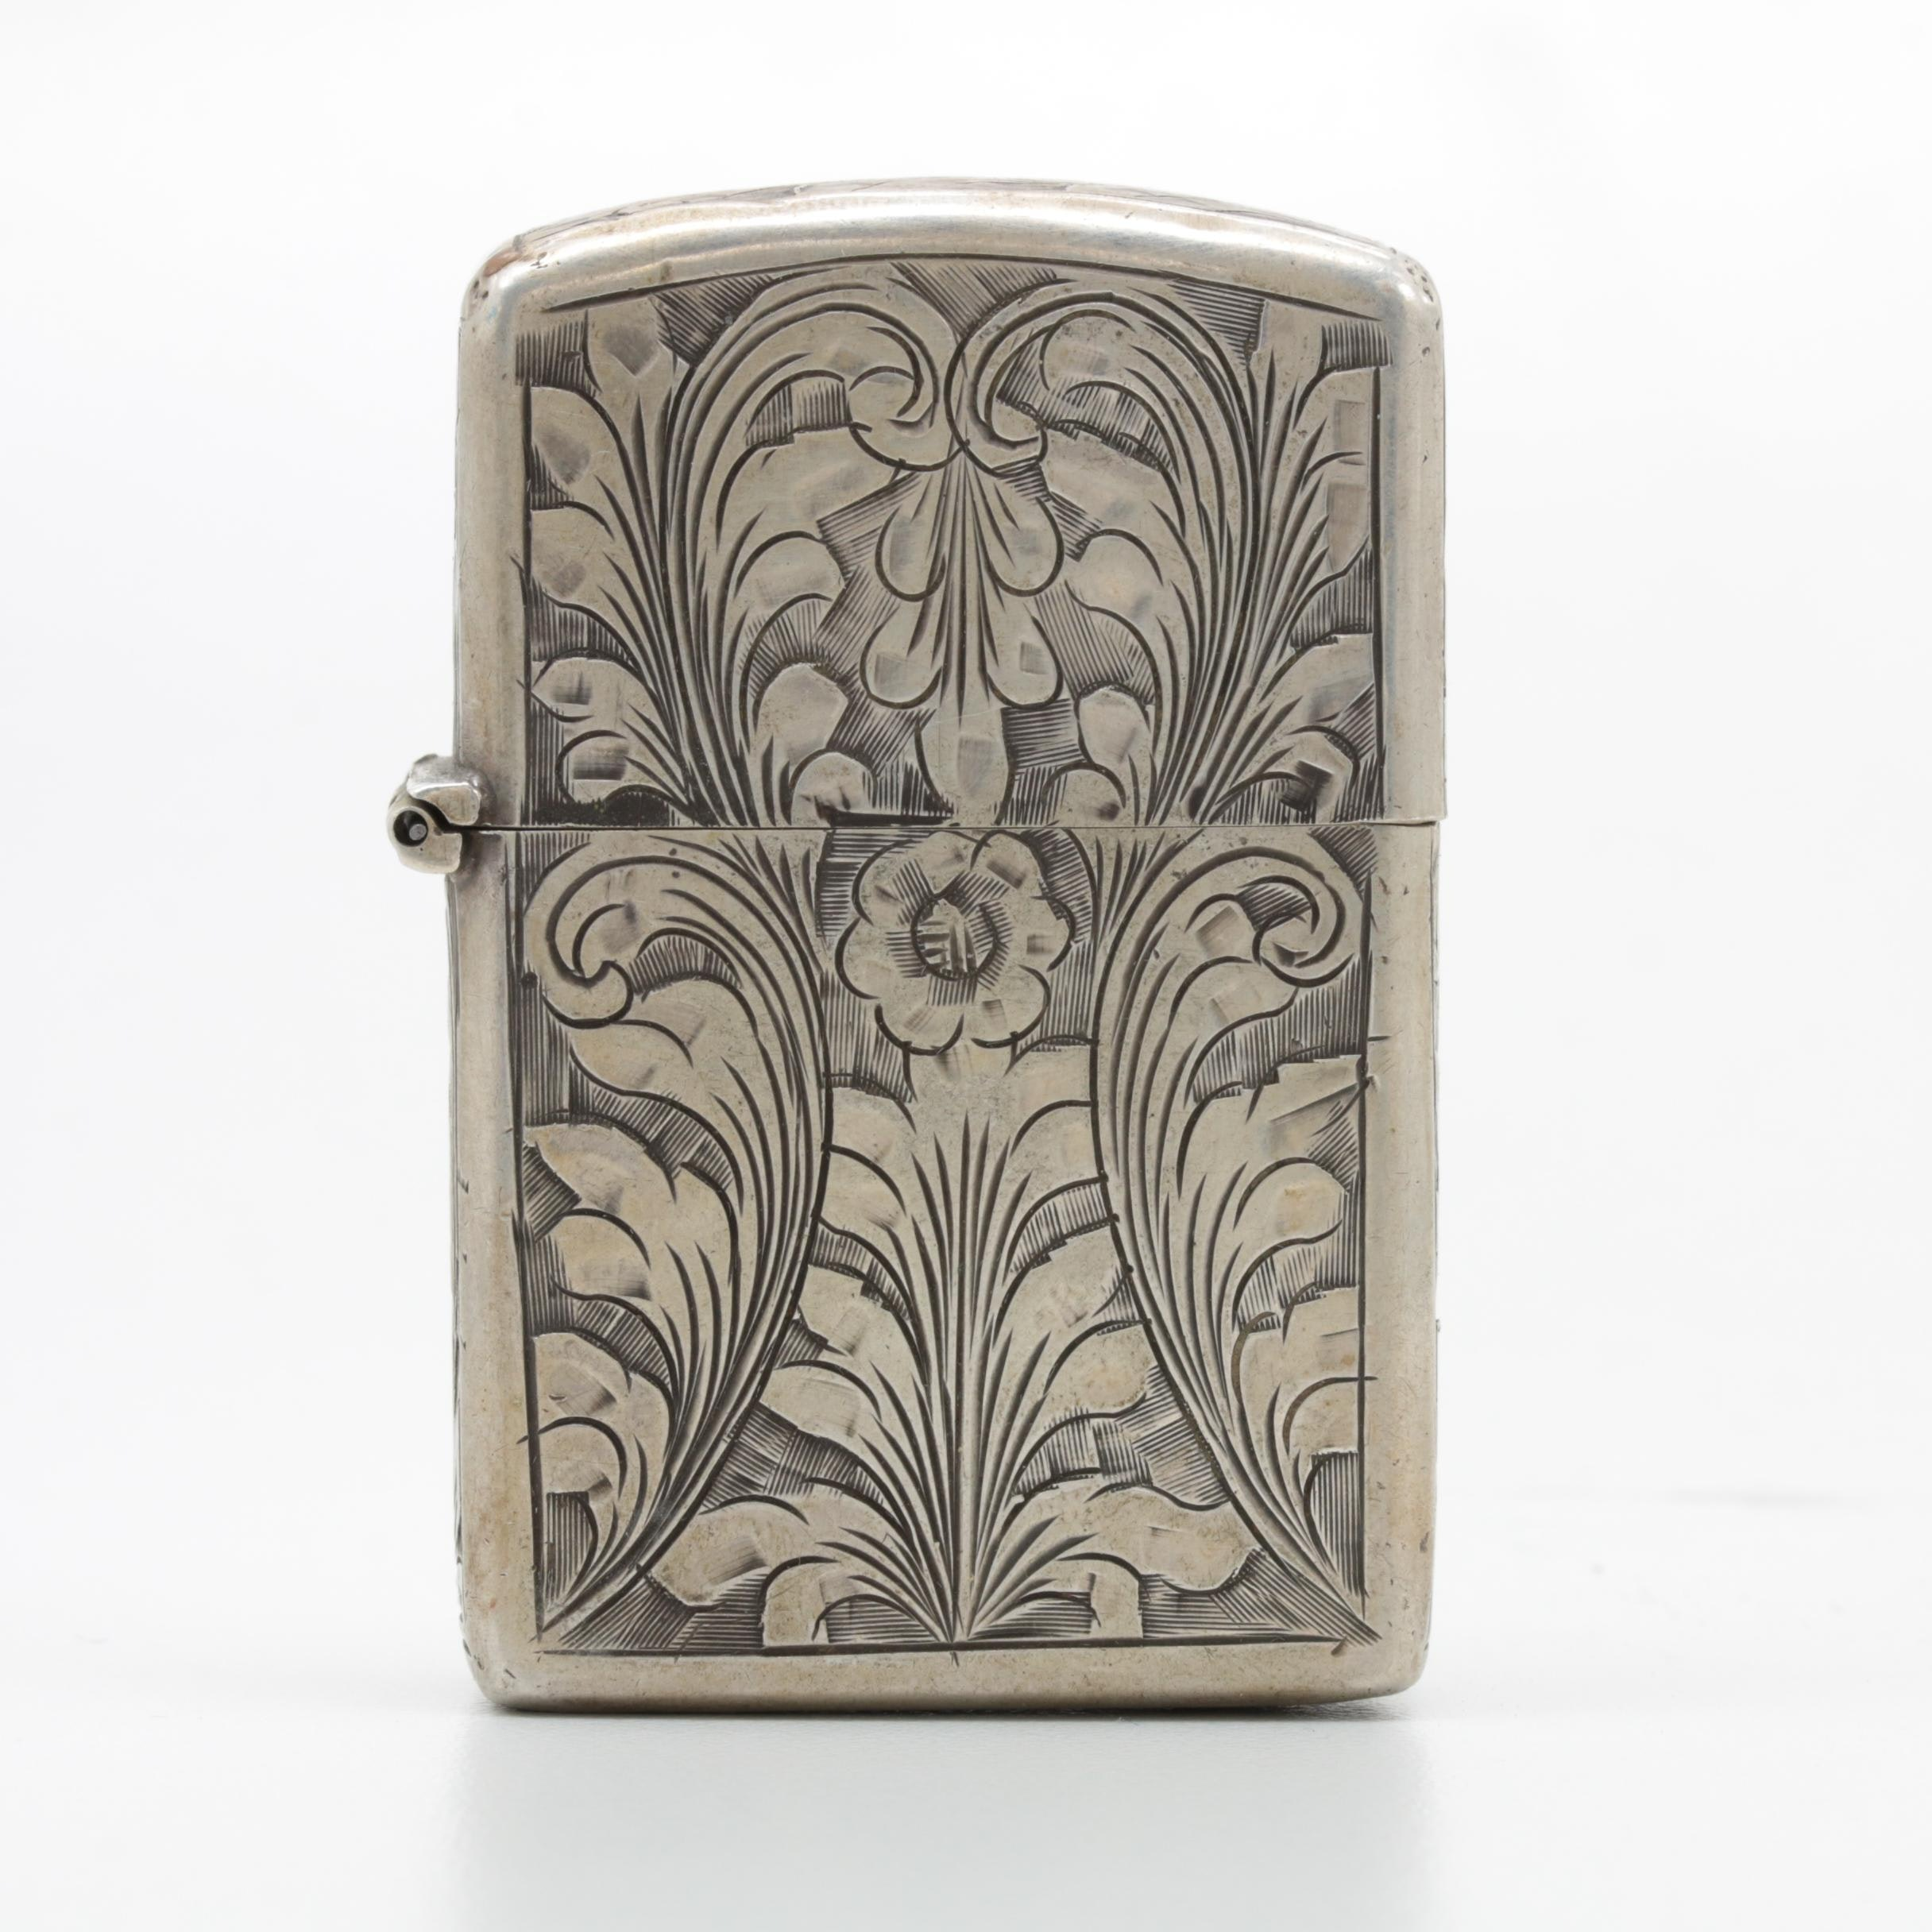 800 Silver Lighter with Engraved Details